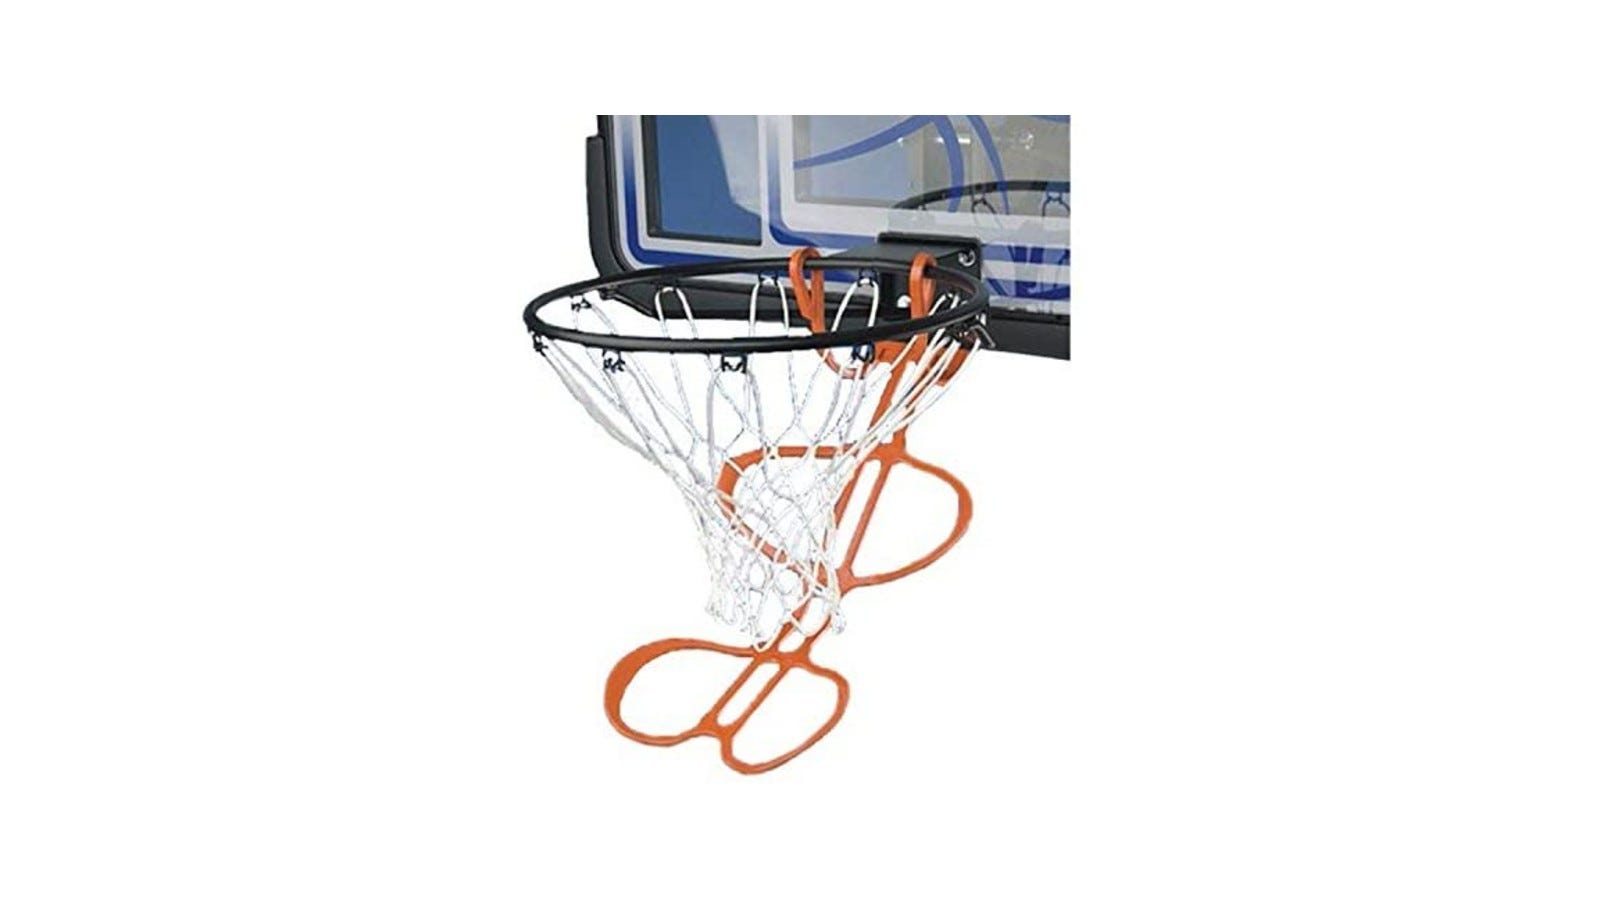 An orange basketball return device with two hooks around the base of a basketball rim.